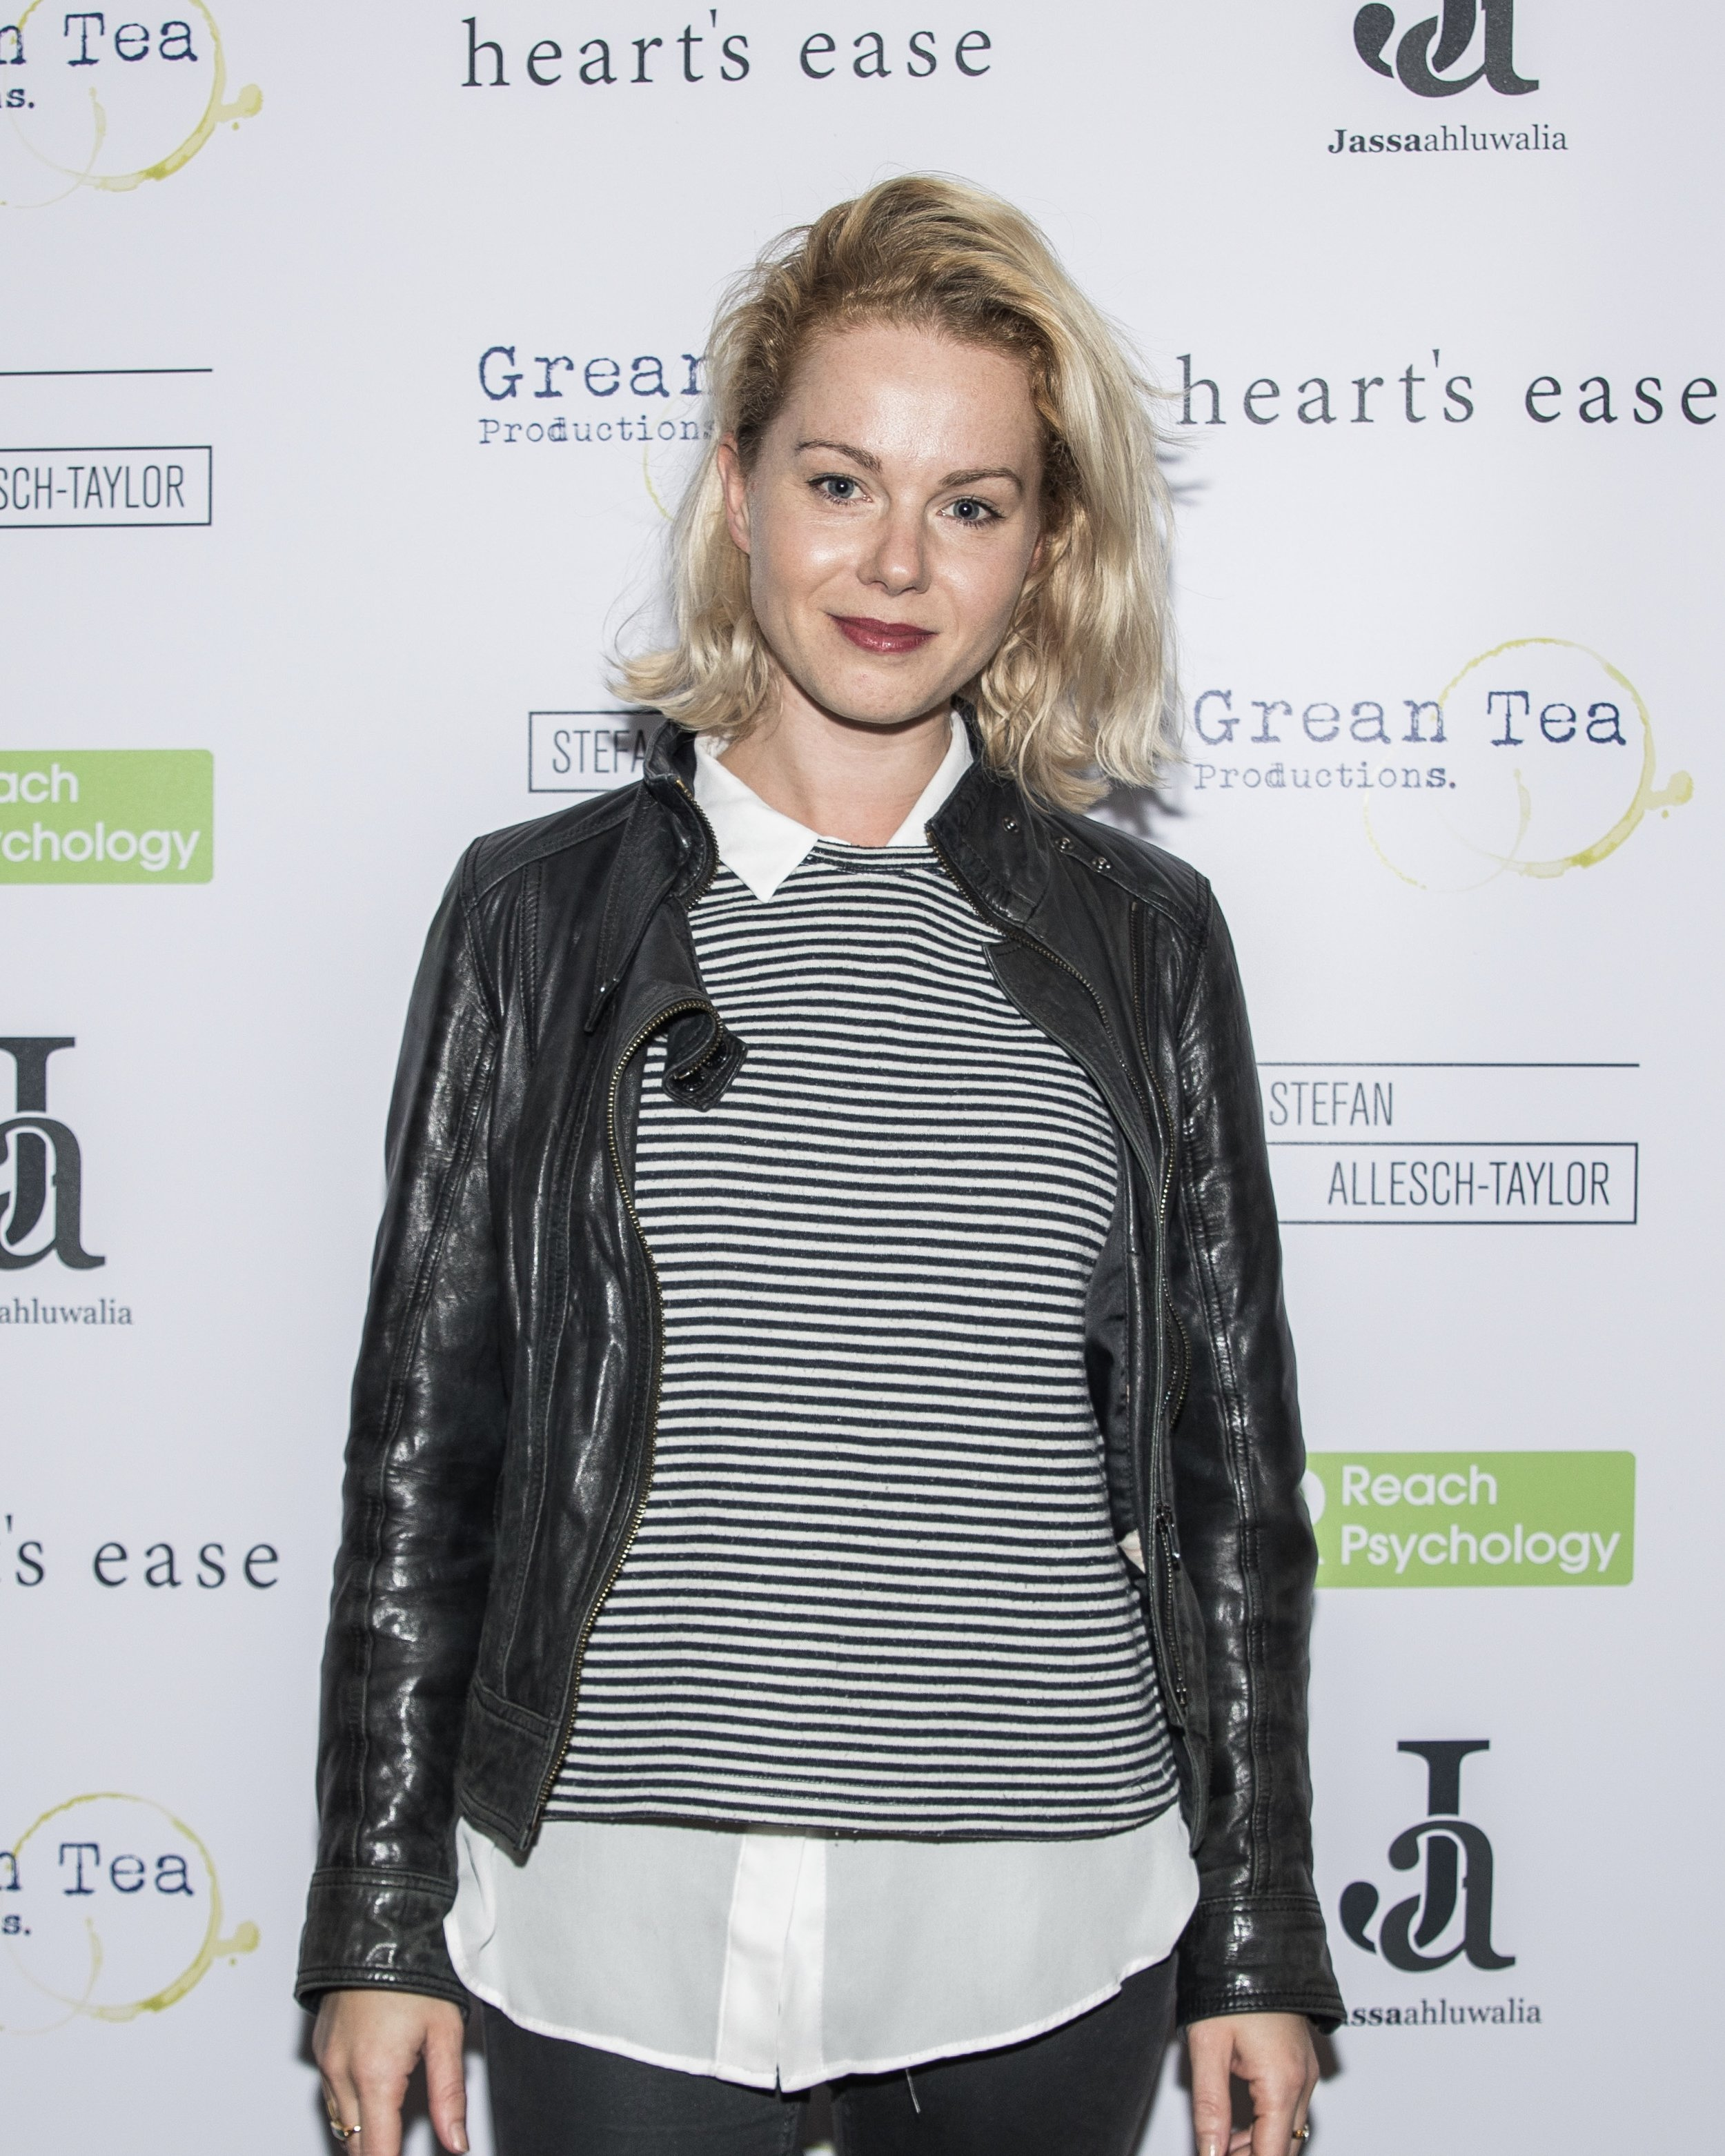 Amy Lennox attends the cast and crew screening of Heart's Ease.